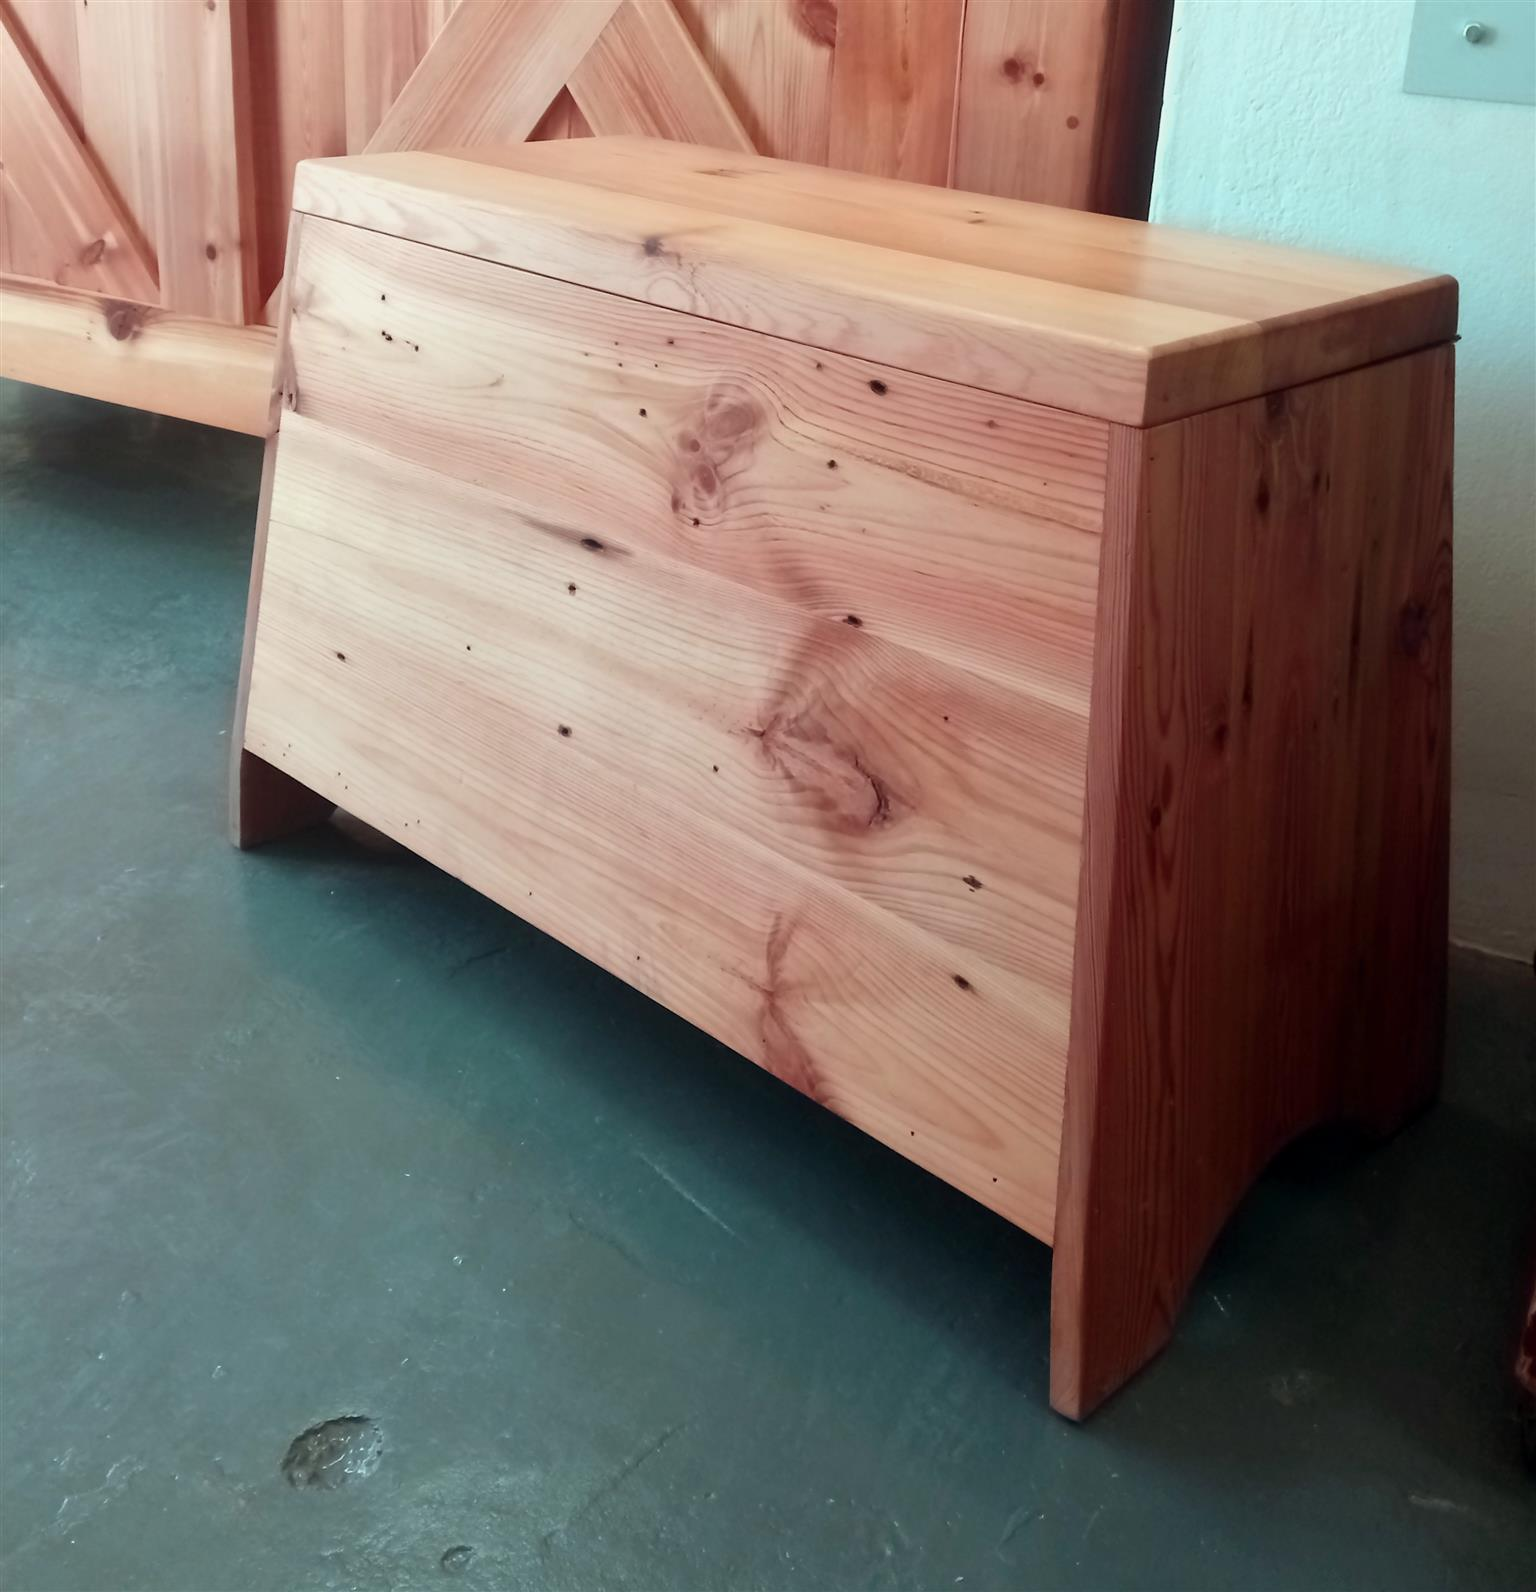 Viking Solid wood handcrafted Kist / Chest - Brand new